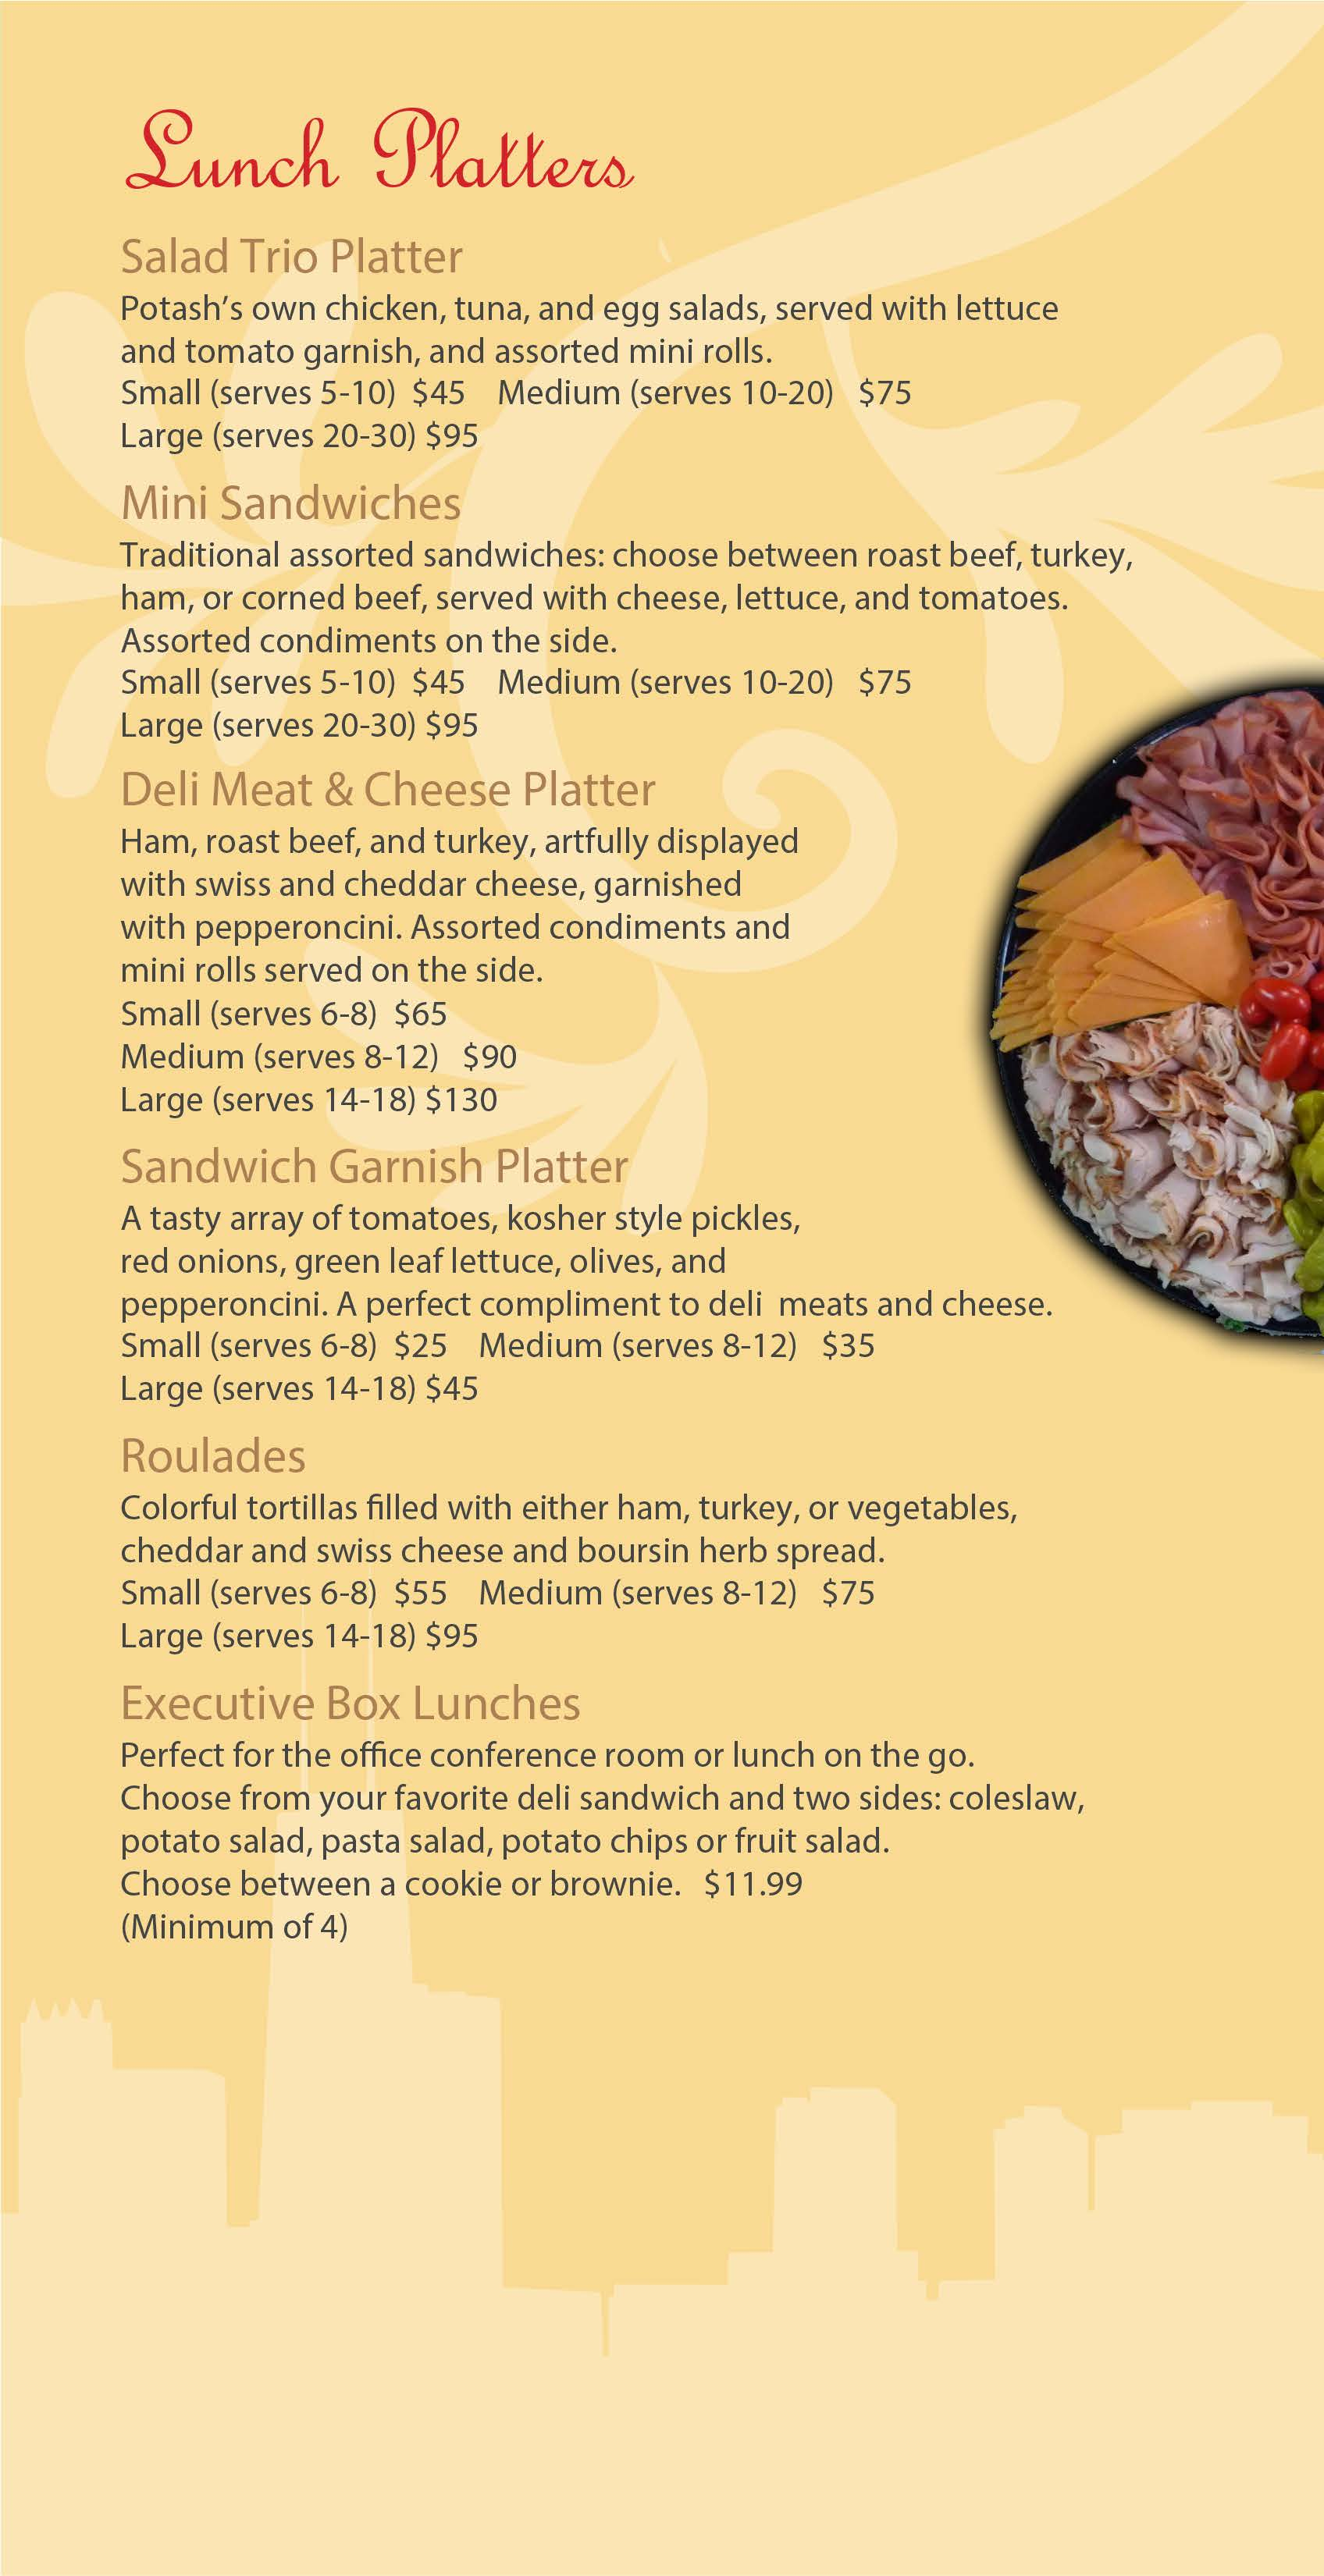 catering page 2